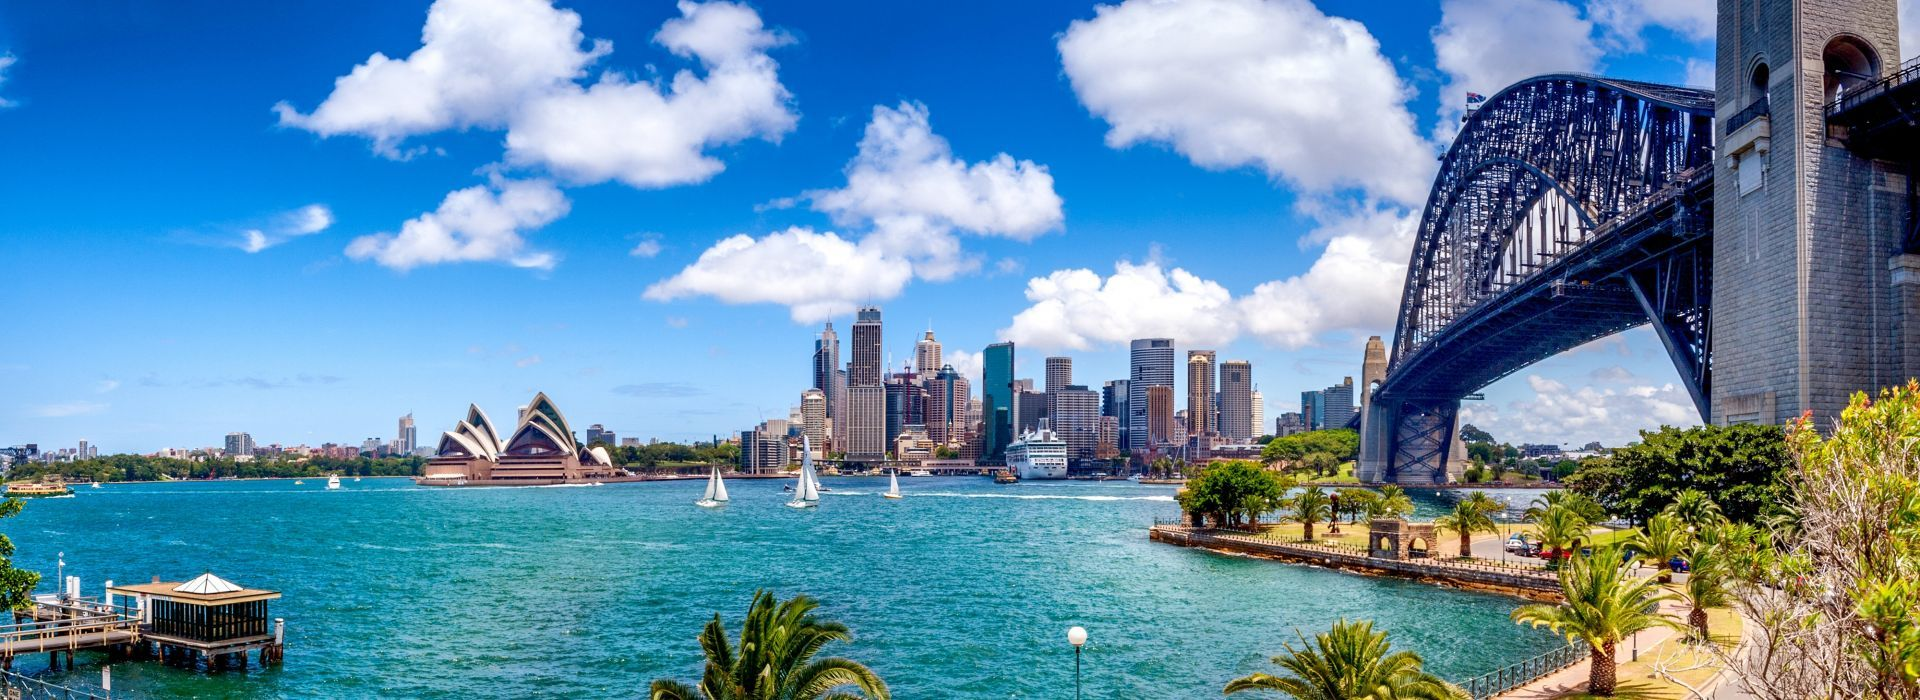 Sightseeing, attractions, culture and history Tours in Australia